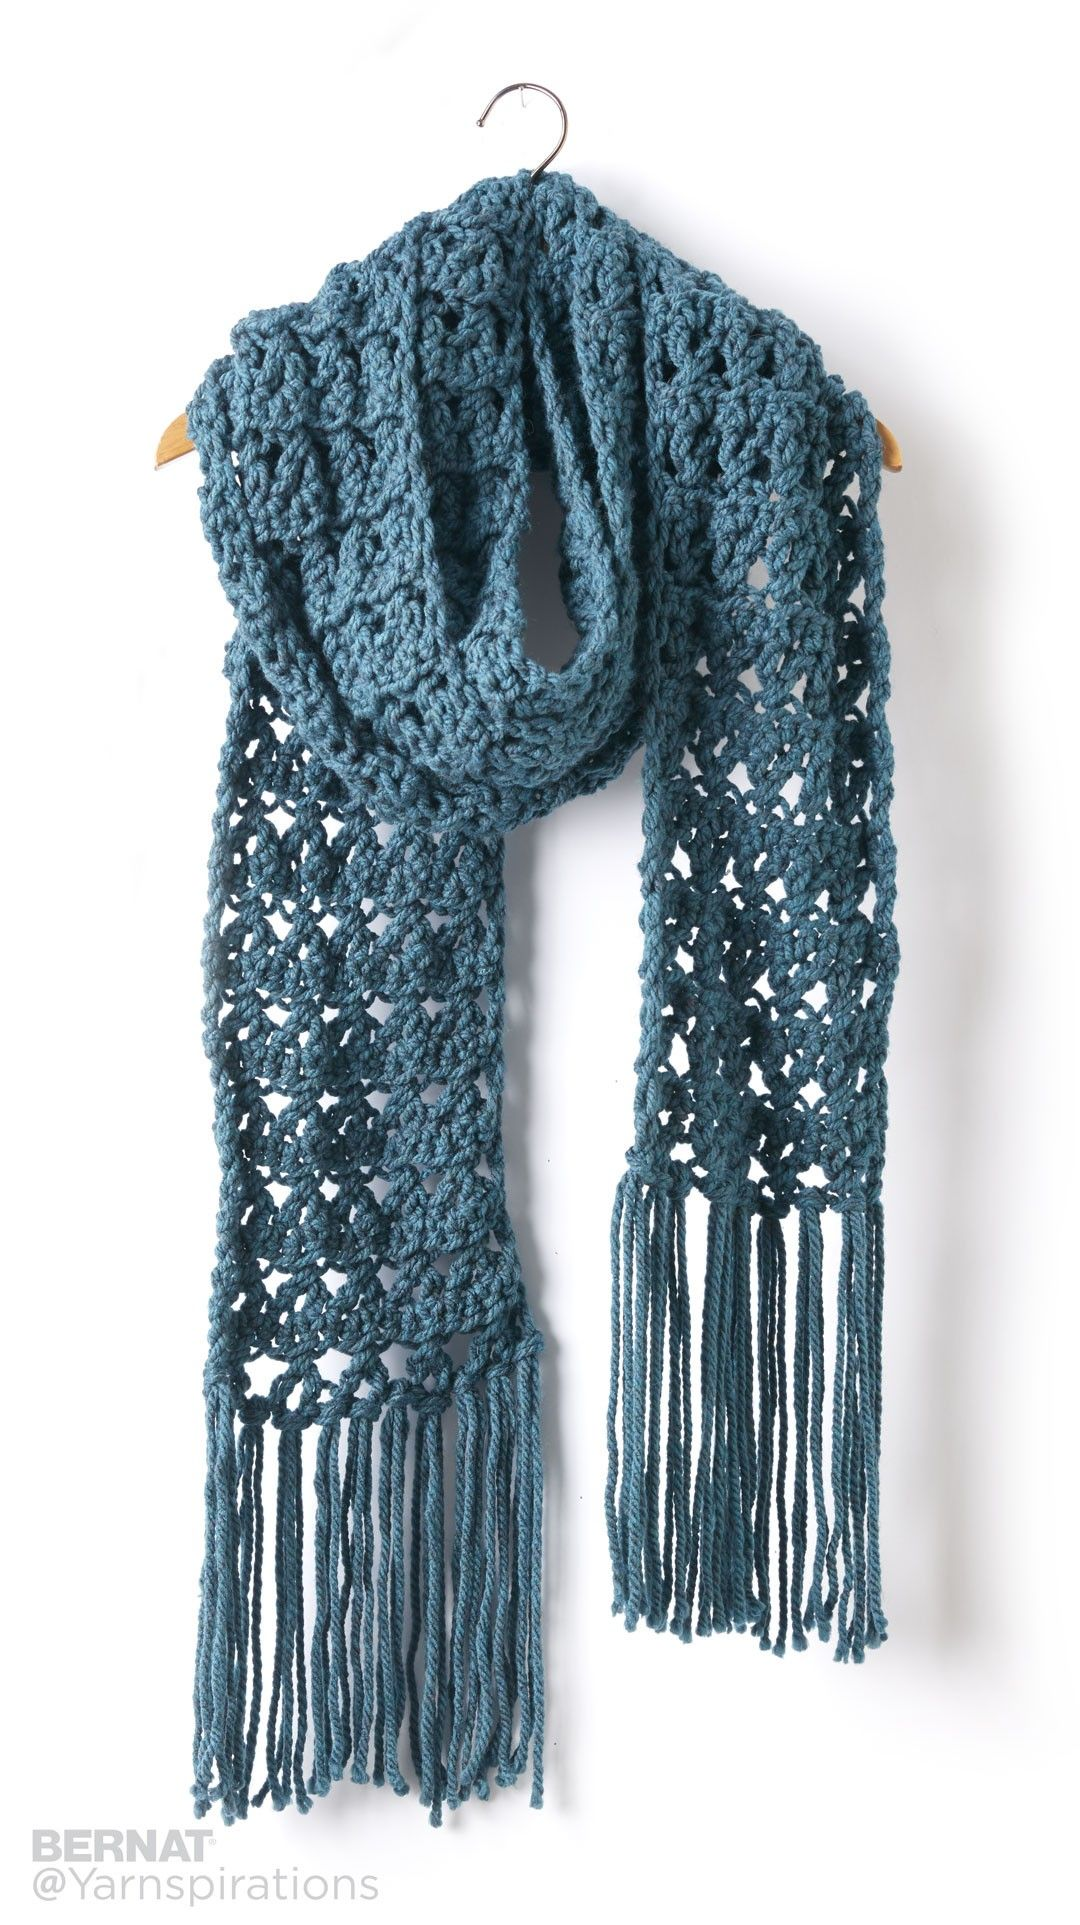 Crossing Paths Crochet Super Scarf - Patterns | Yarnspirations ...